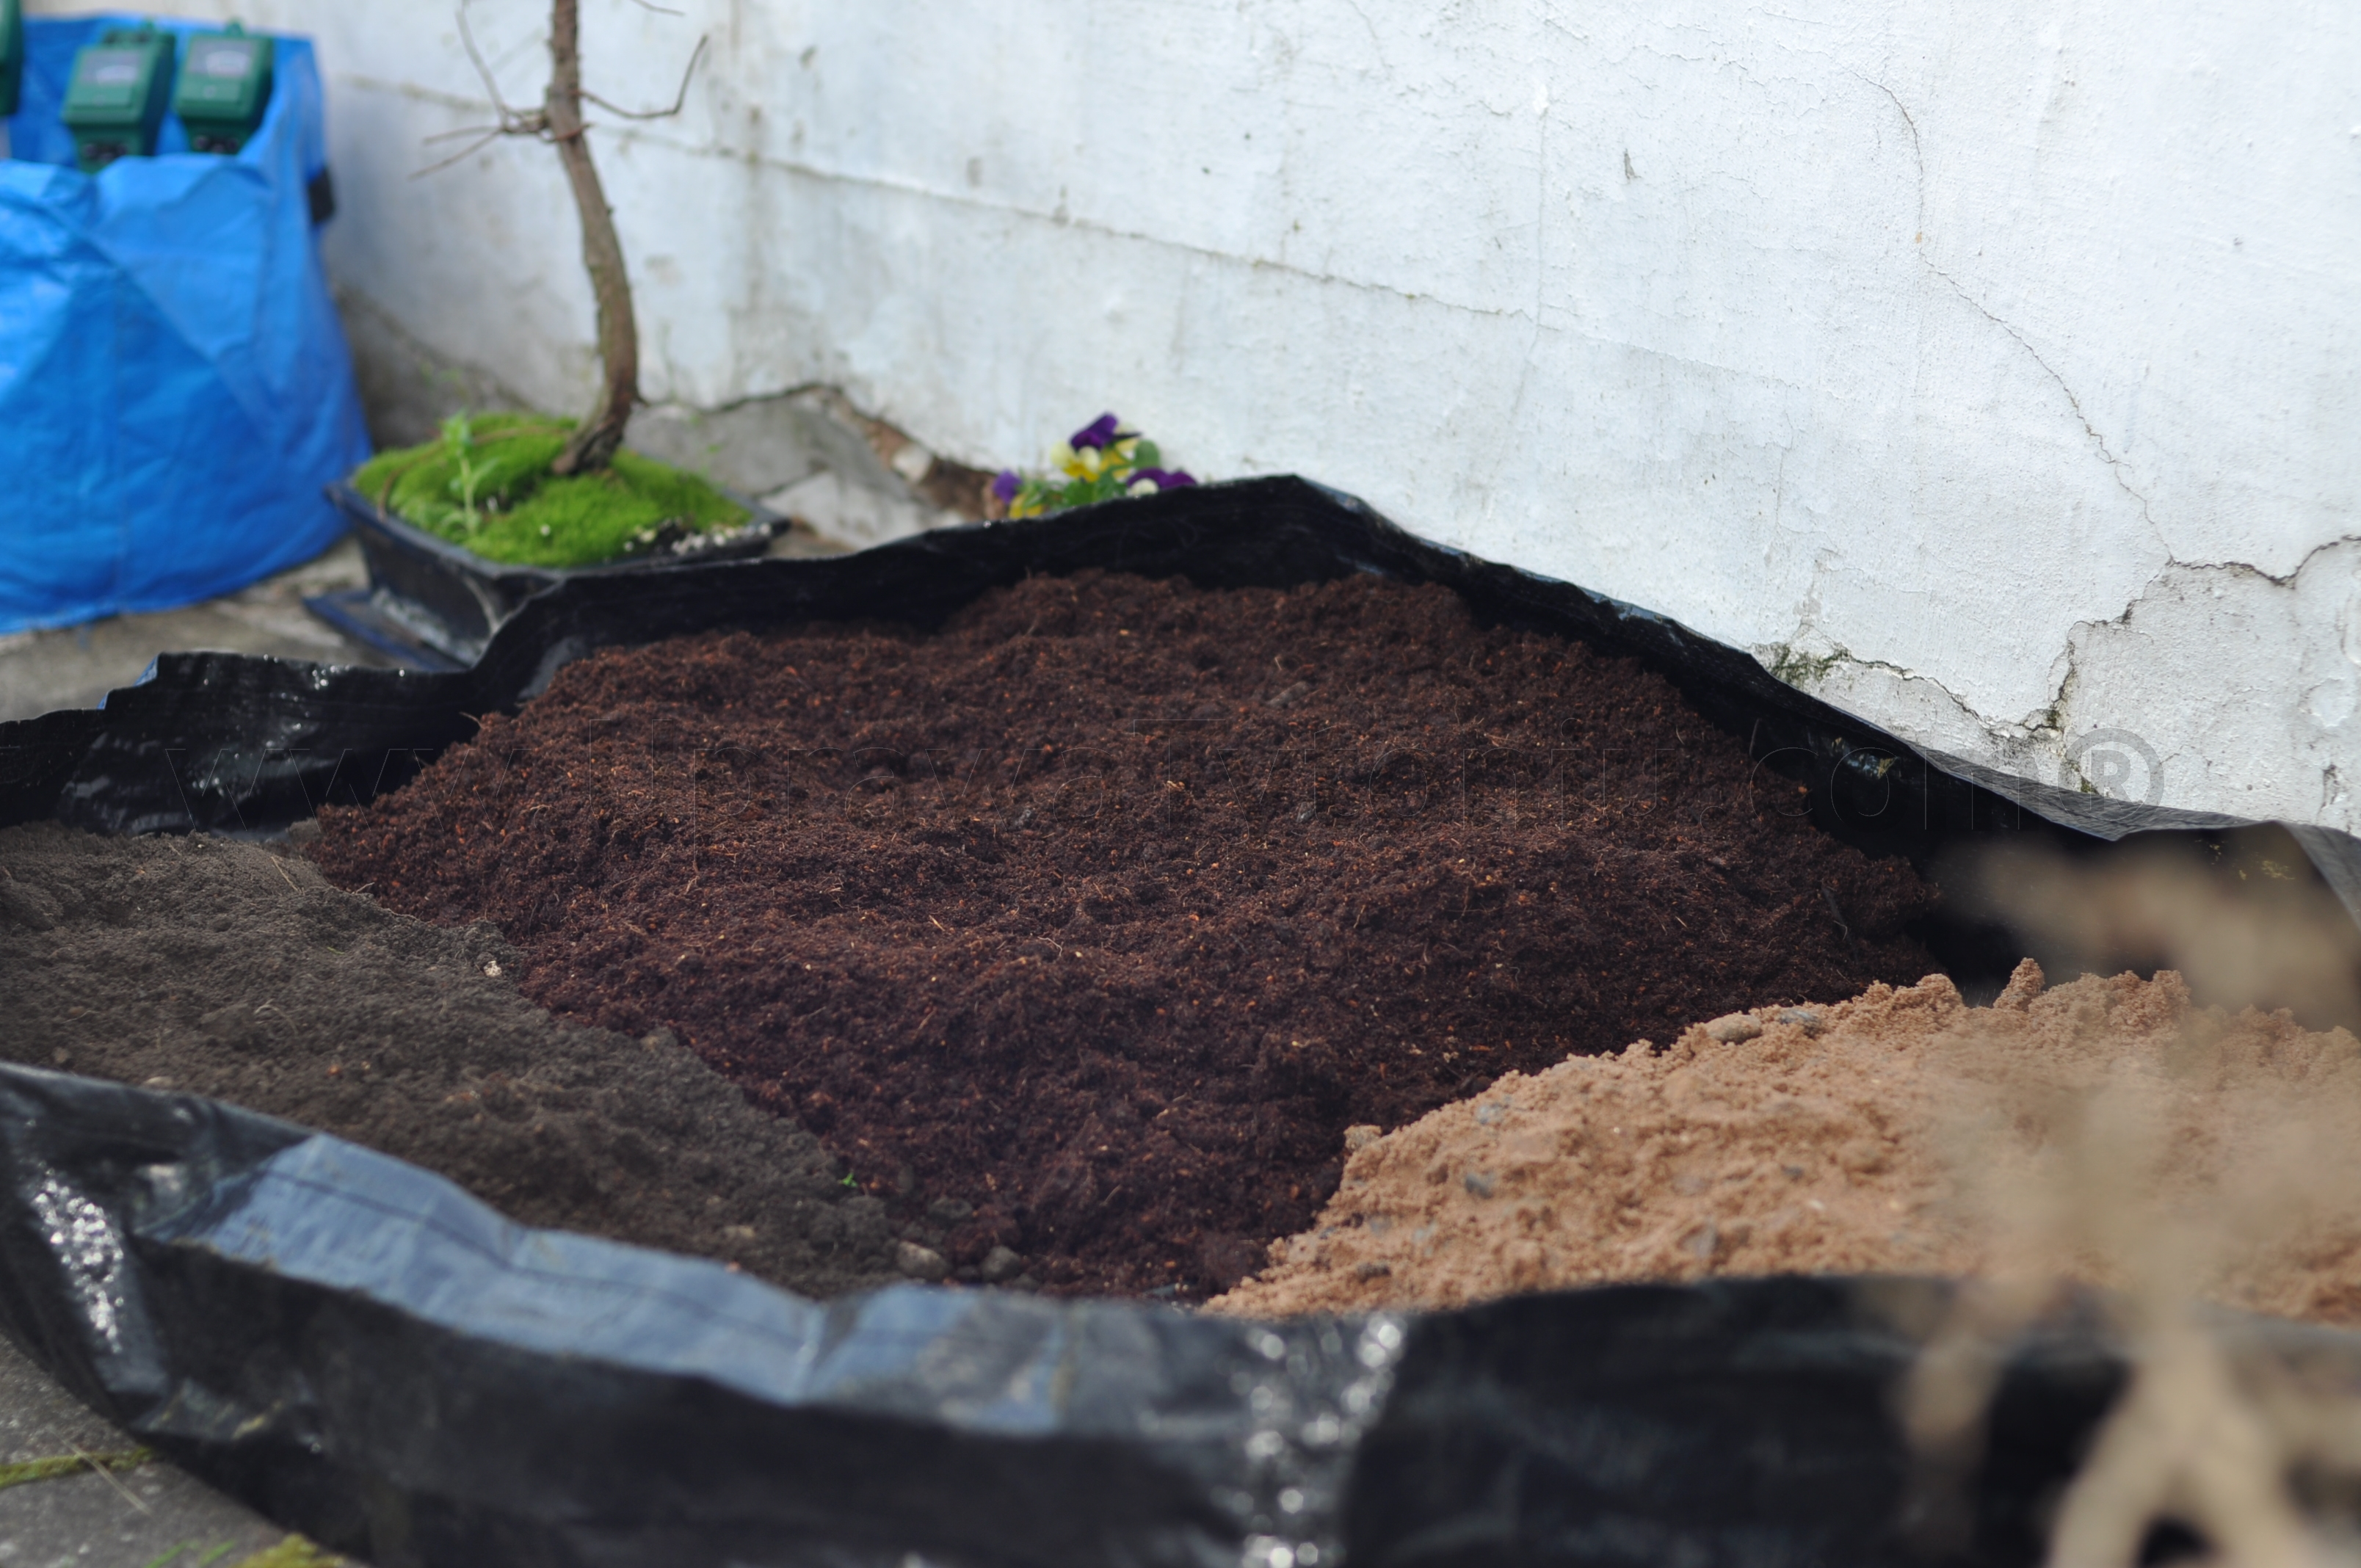 preparing soil for tobacco